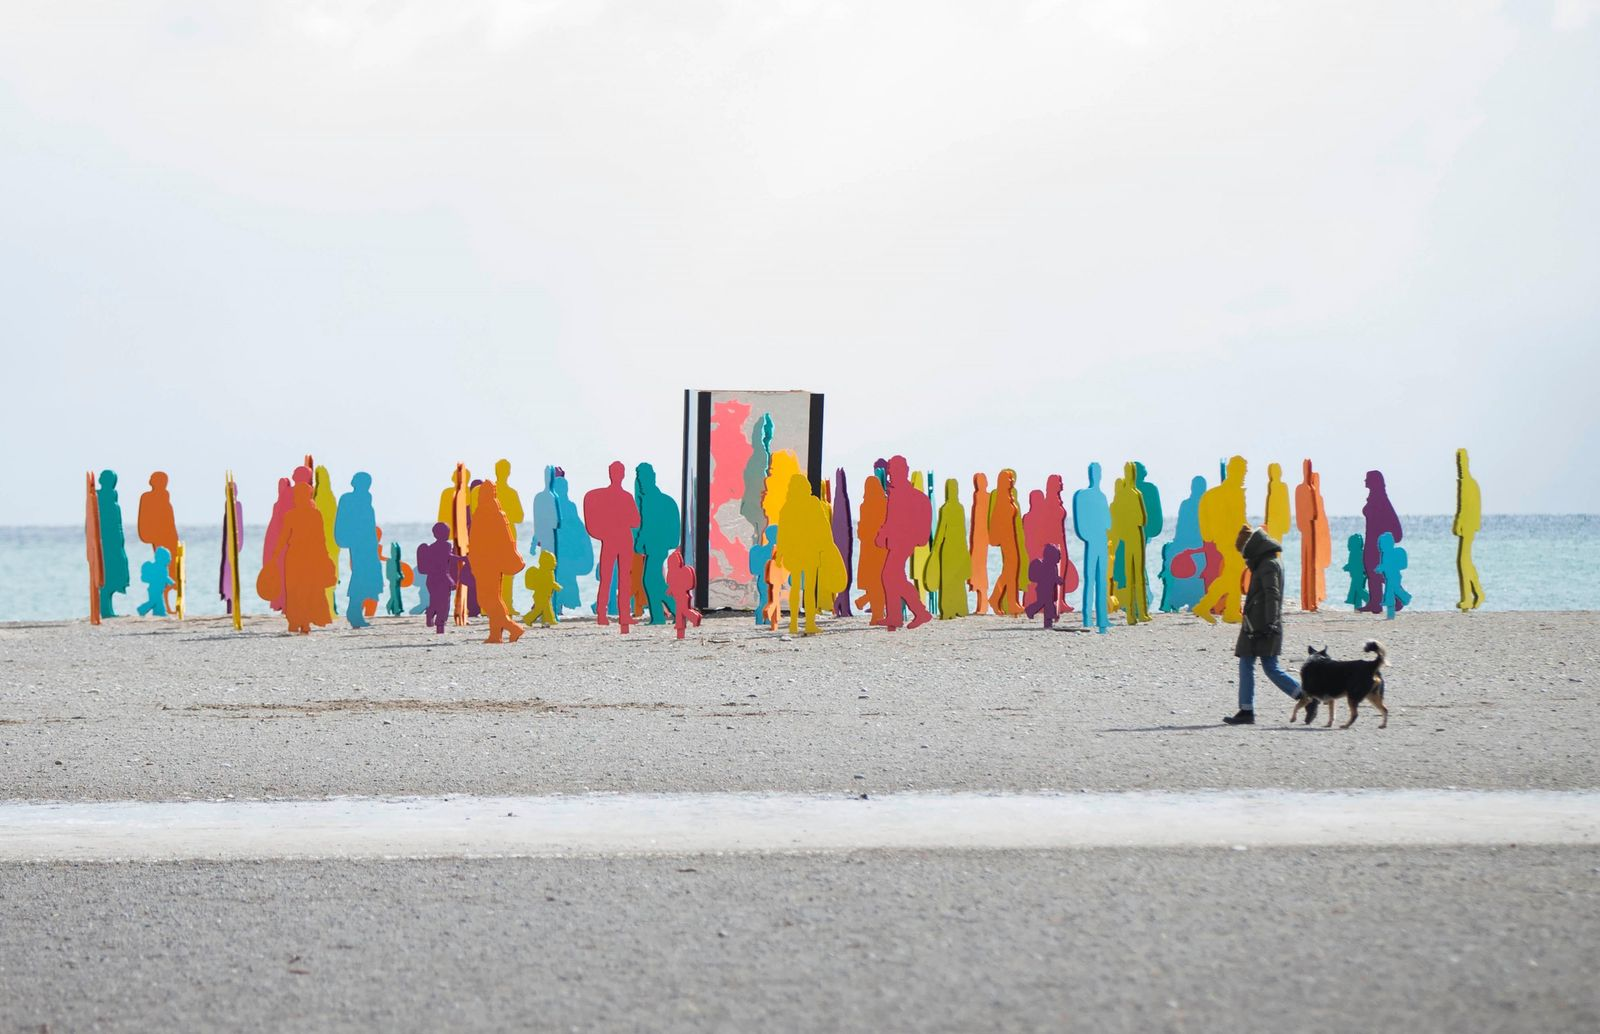 'Cavalcade', an art installation on Woodbine Beach, Ontario, Canada in February 2019. The designers John Nguyen, Victor ...